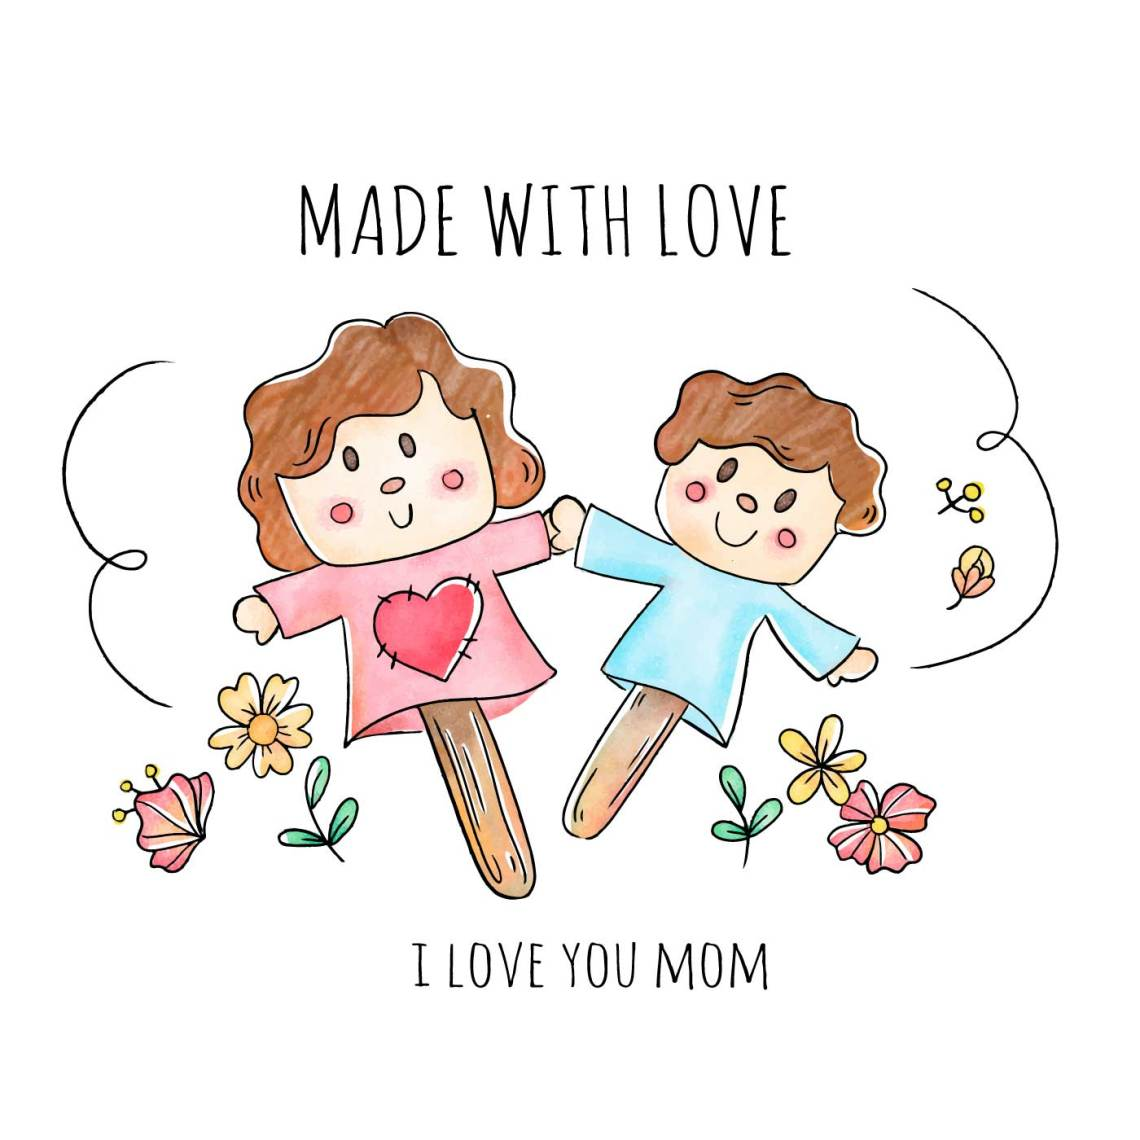 Download Made With Love Free Vector Art - (22 Free Downloads)